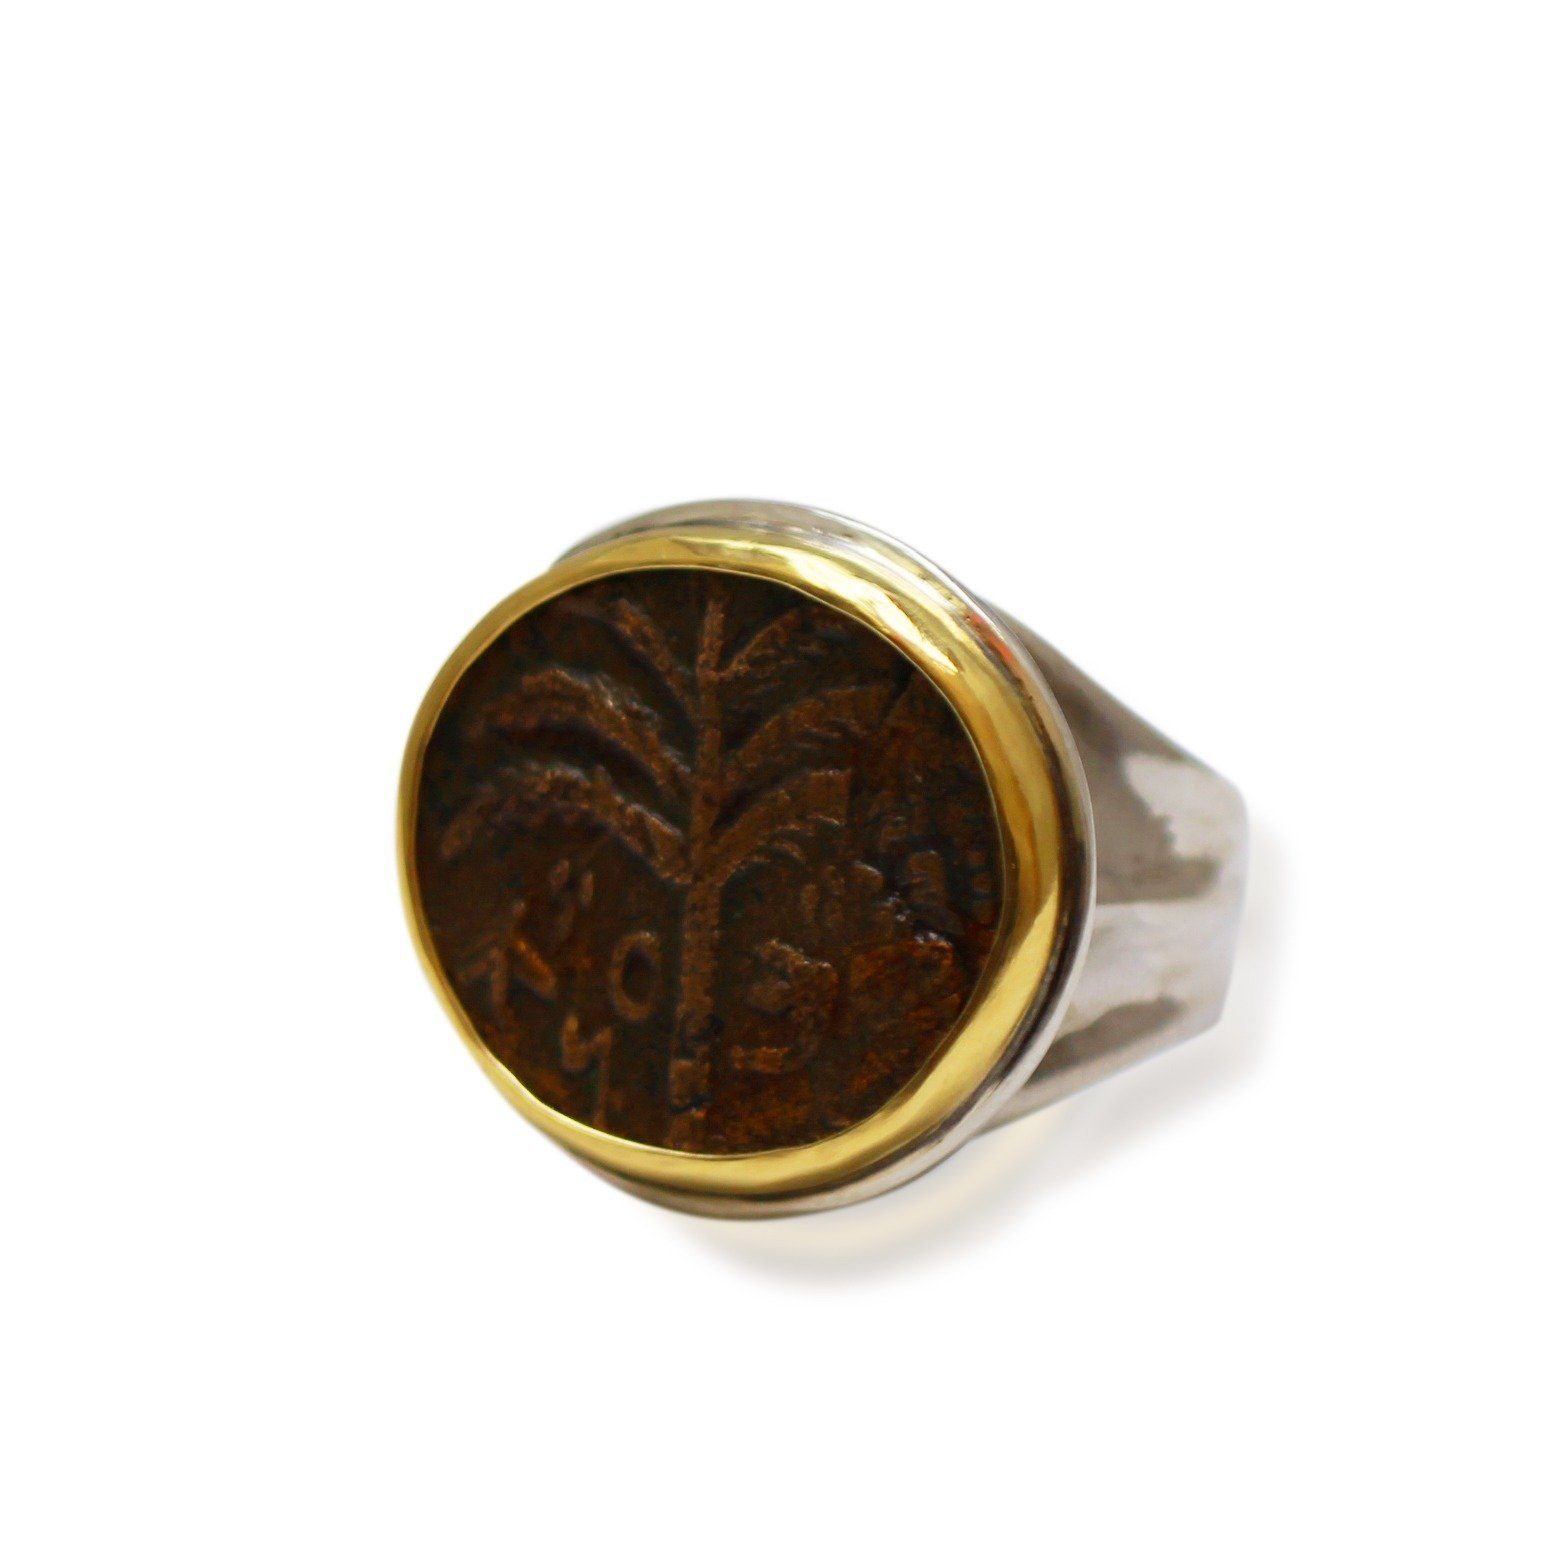 14K Gold Bezel, Silver Ring, Shimon, Bar Cochba, Palm Tree, ID13282 - Erez Ancient Coin Jewelry